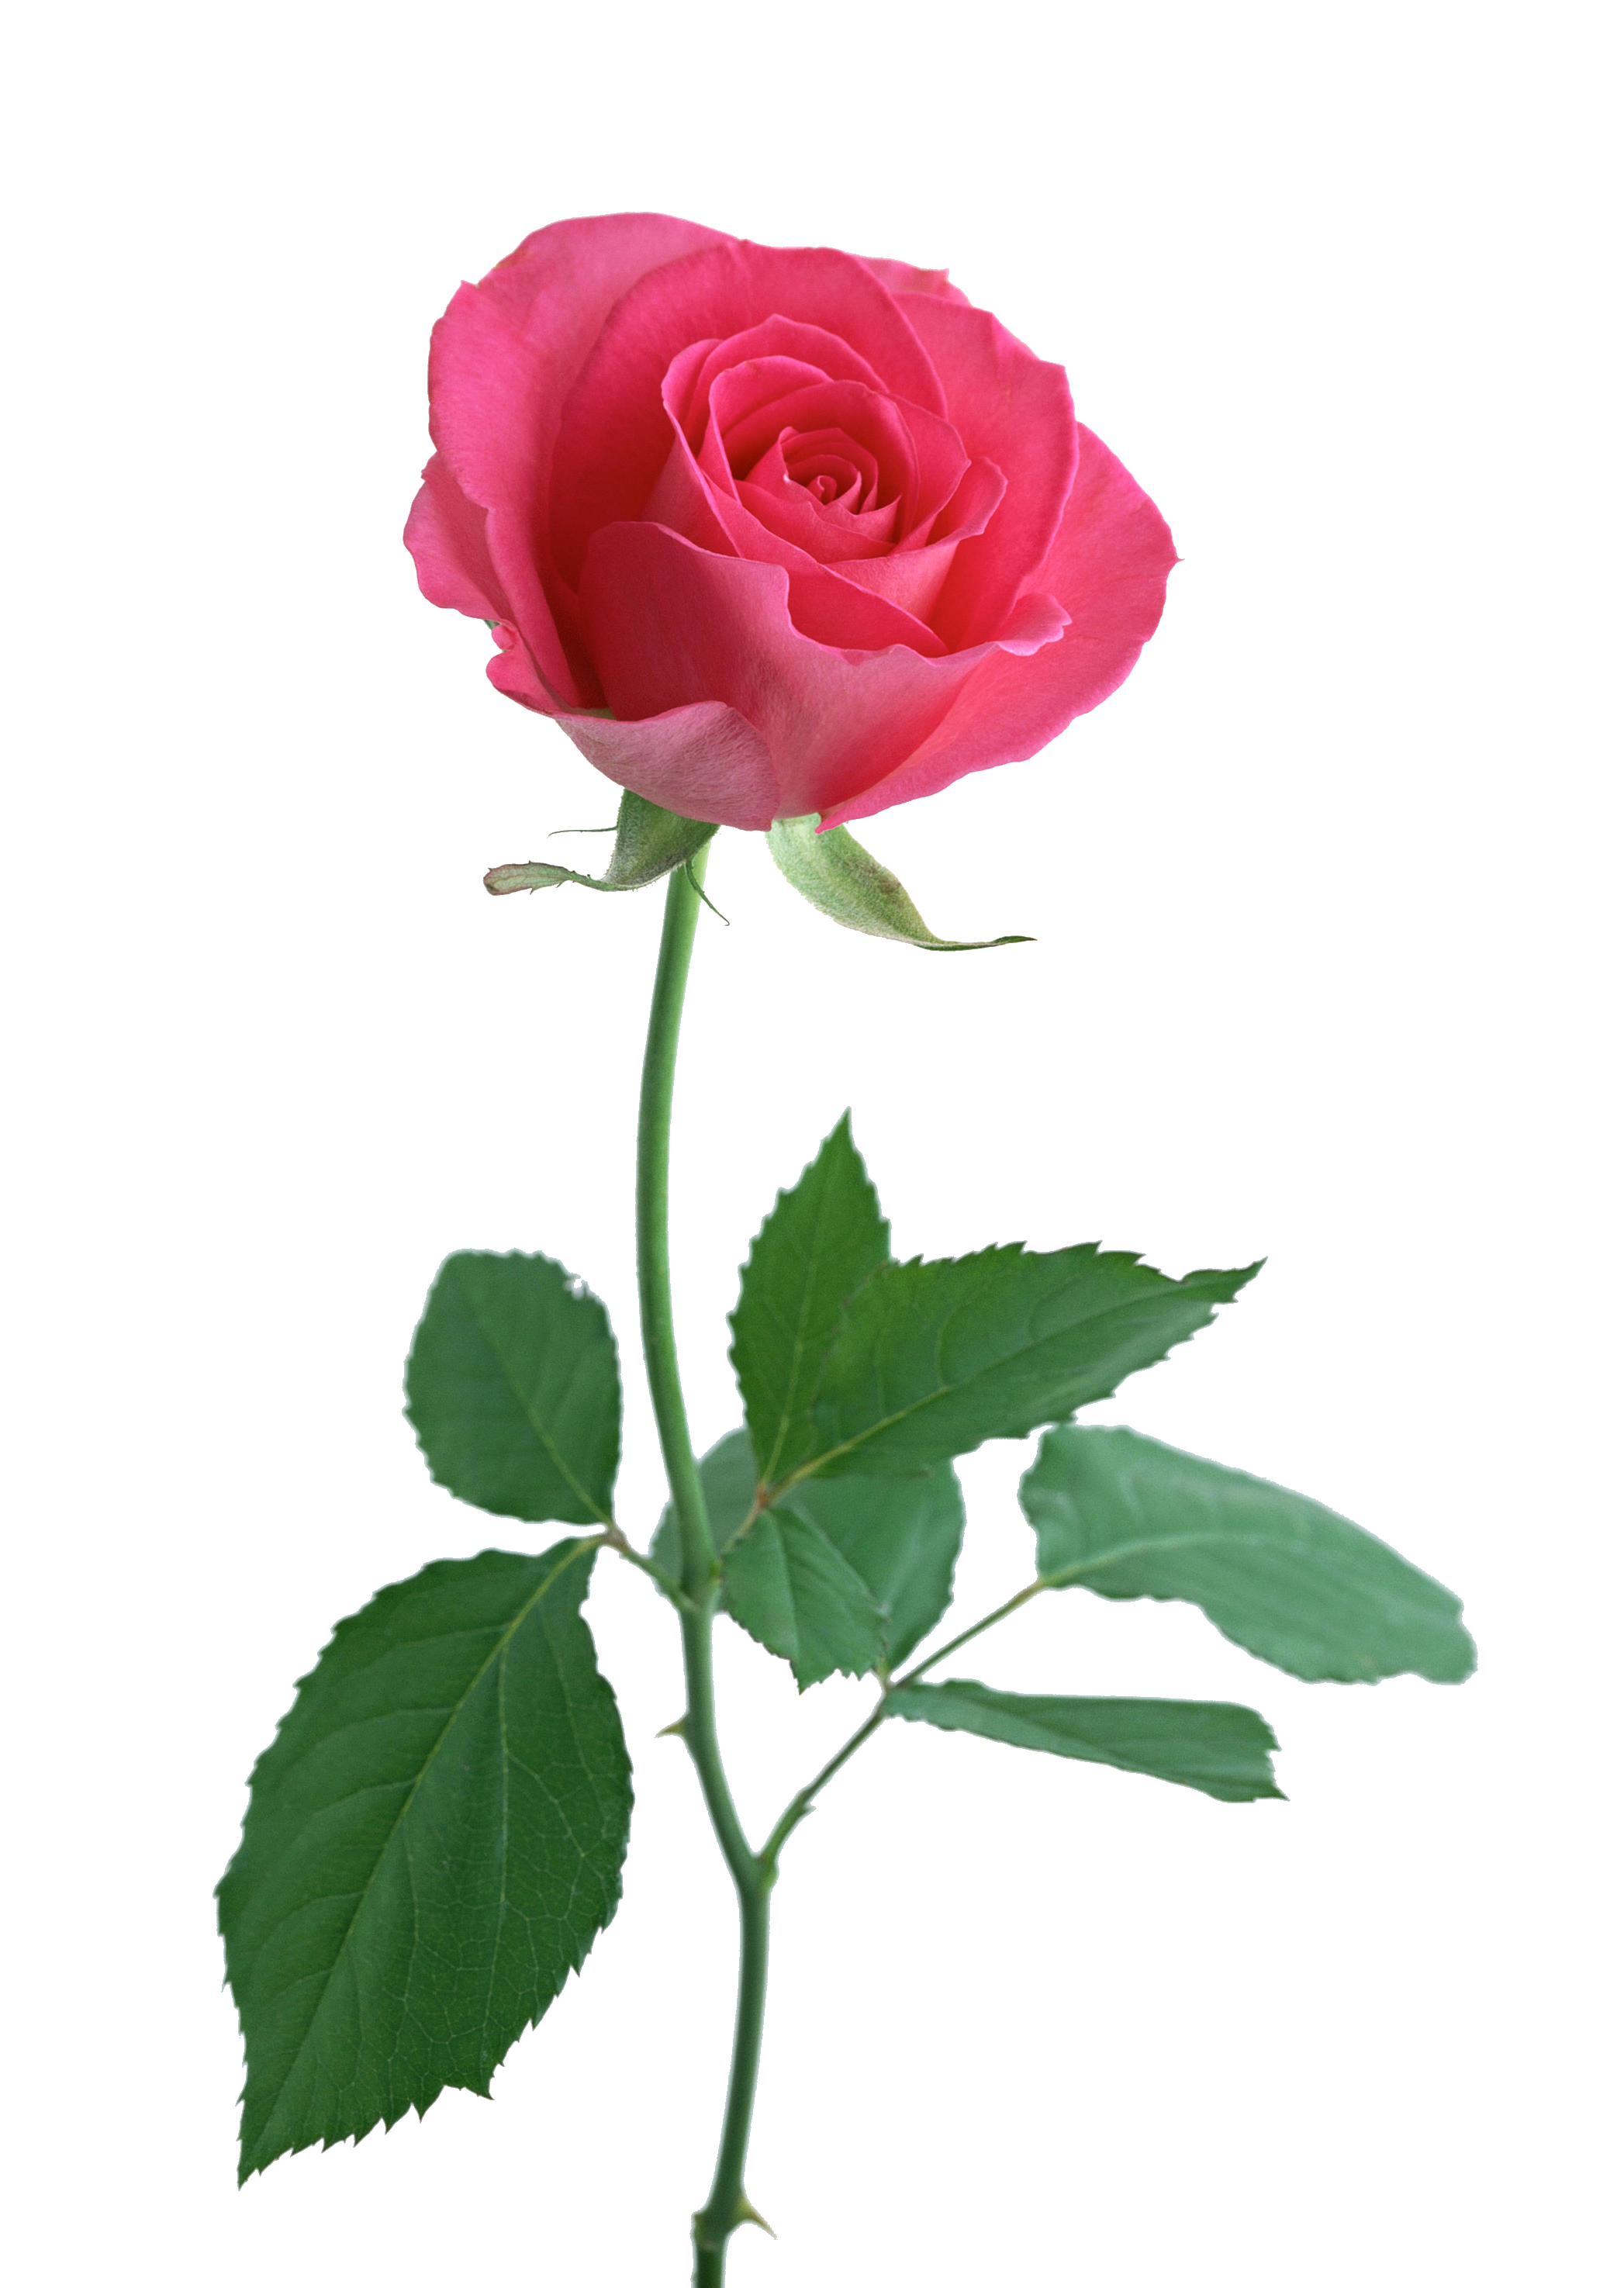 Pink flower with stem clipart image free stock 54a644475ccacf4a44ec72b9 image free stock